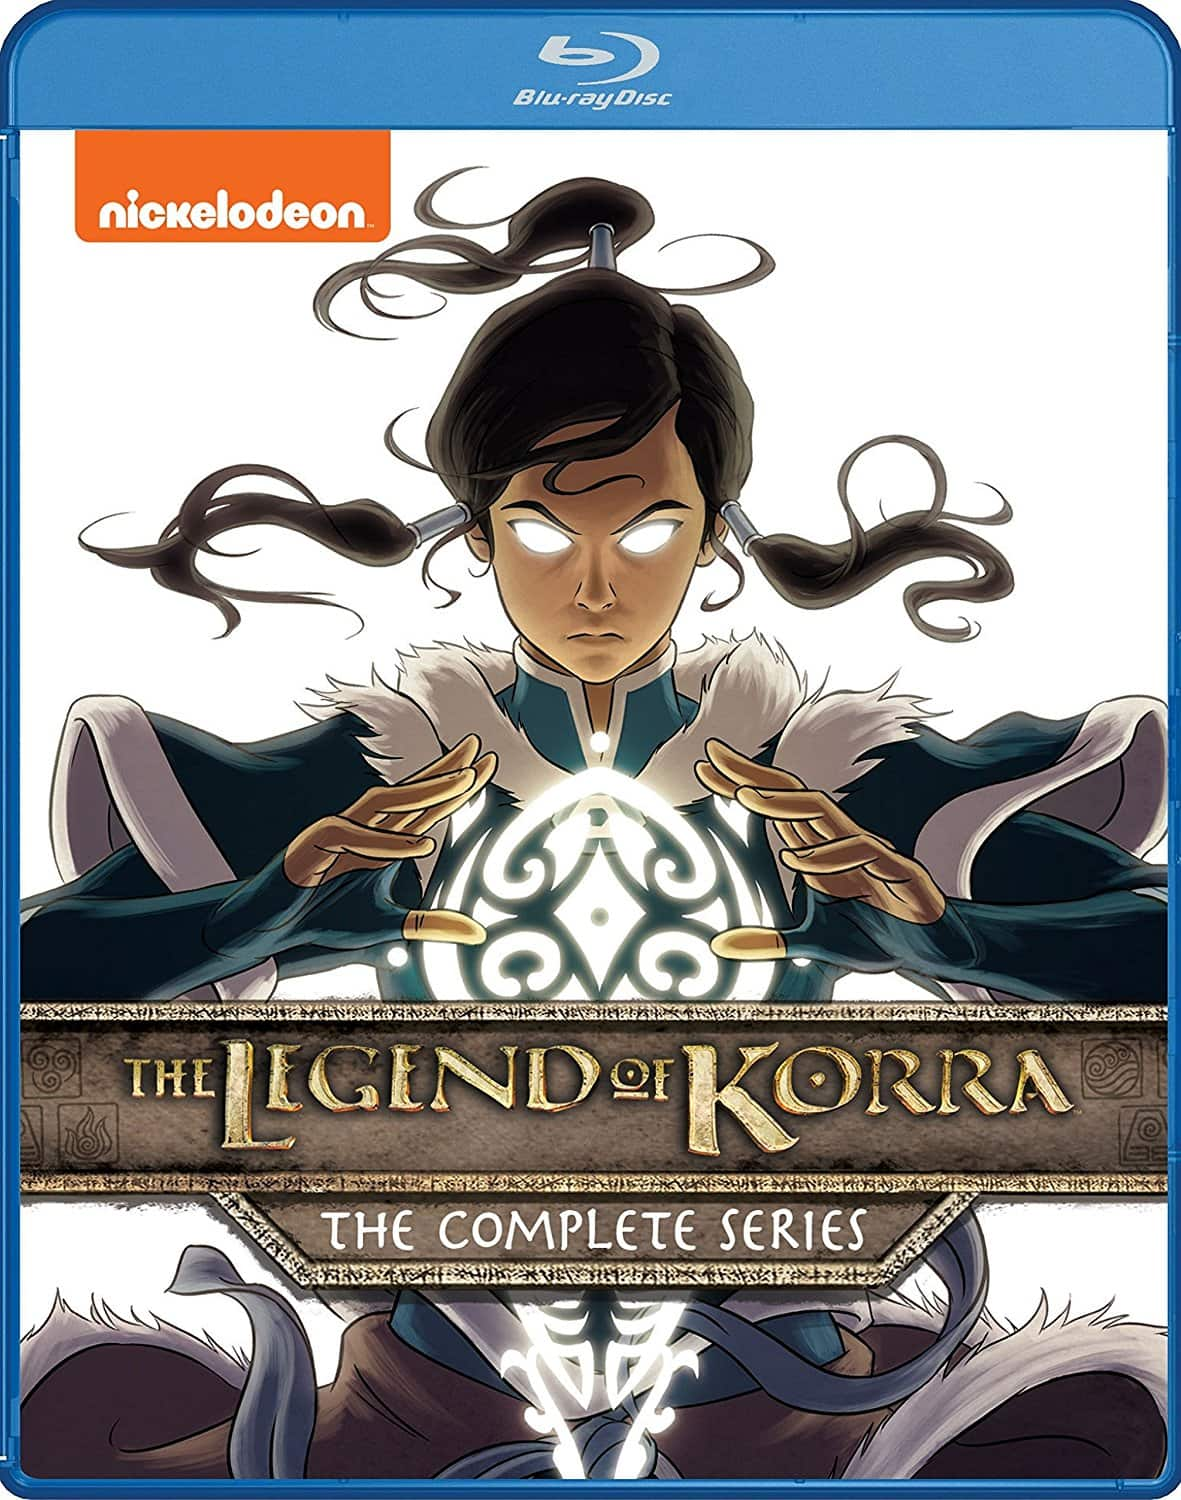 The Legend of Korra: The Complete Series Pre-Order (Blu-Ray) $42.99 via Amazon